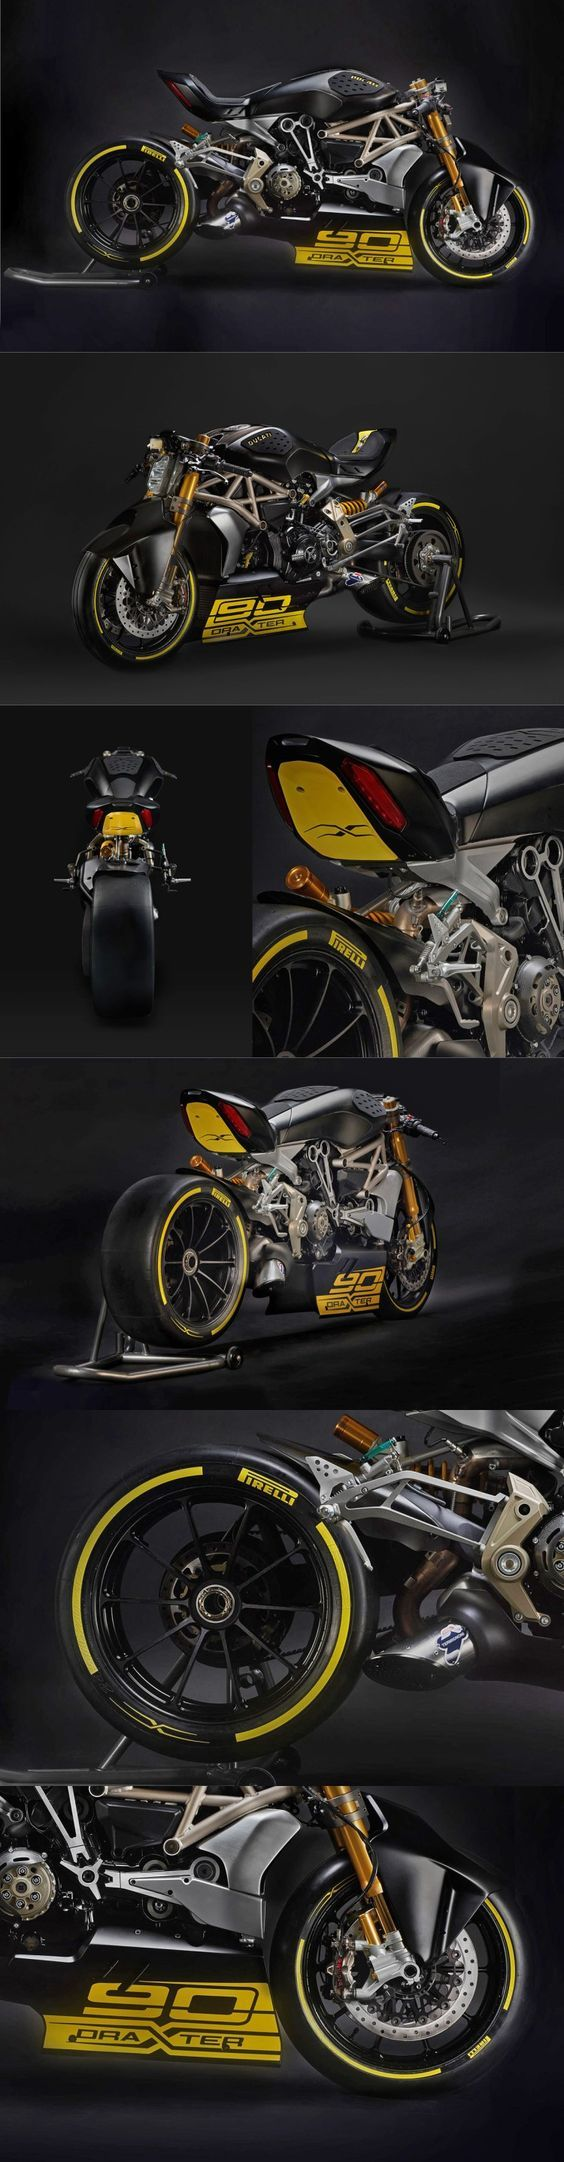 Ducati Diavel DraXter - Return of the Cafe Racers: